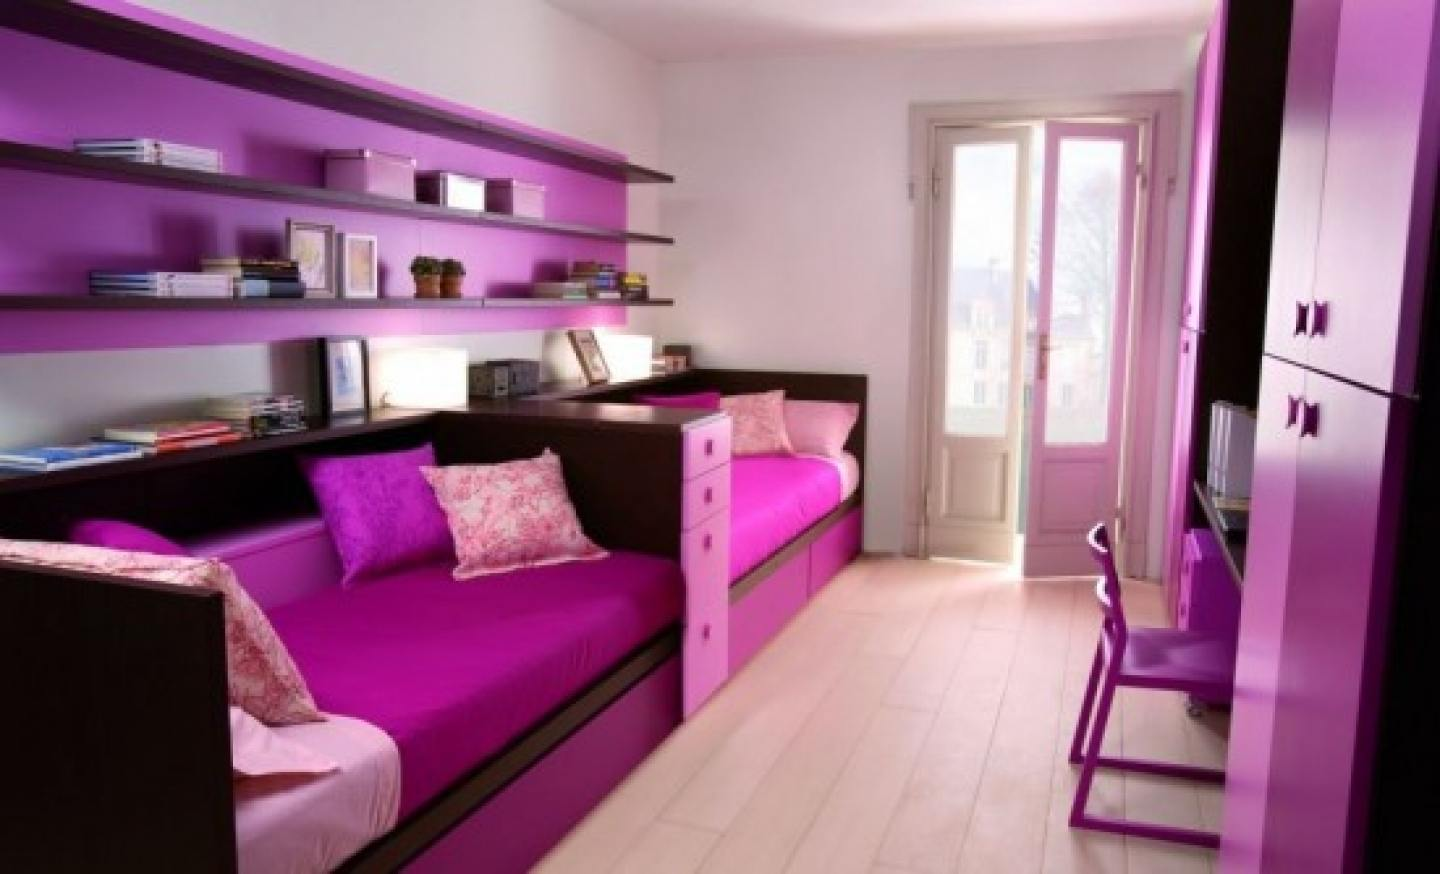 Purple Rooms Fascinating Of Pink and Purple Bedroom Ideas Picture